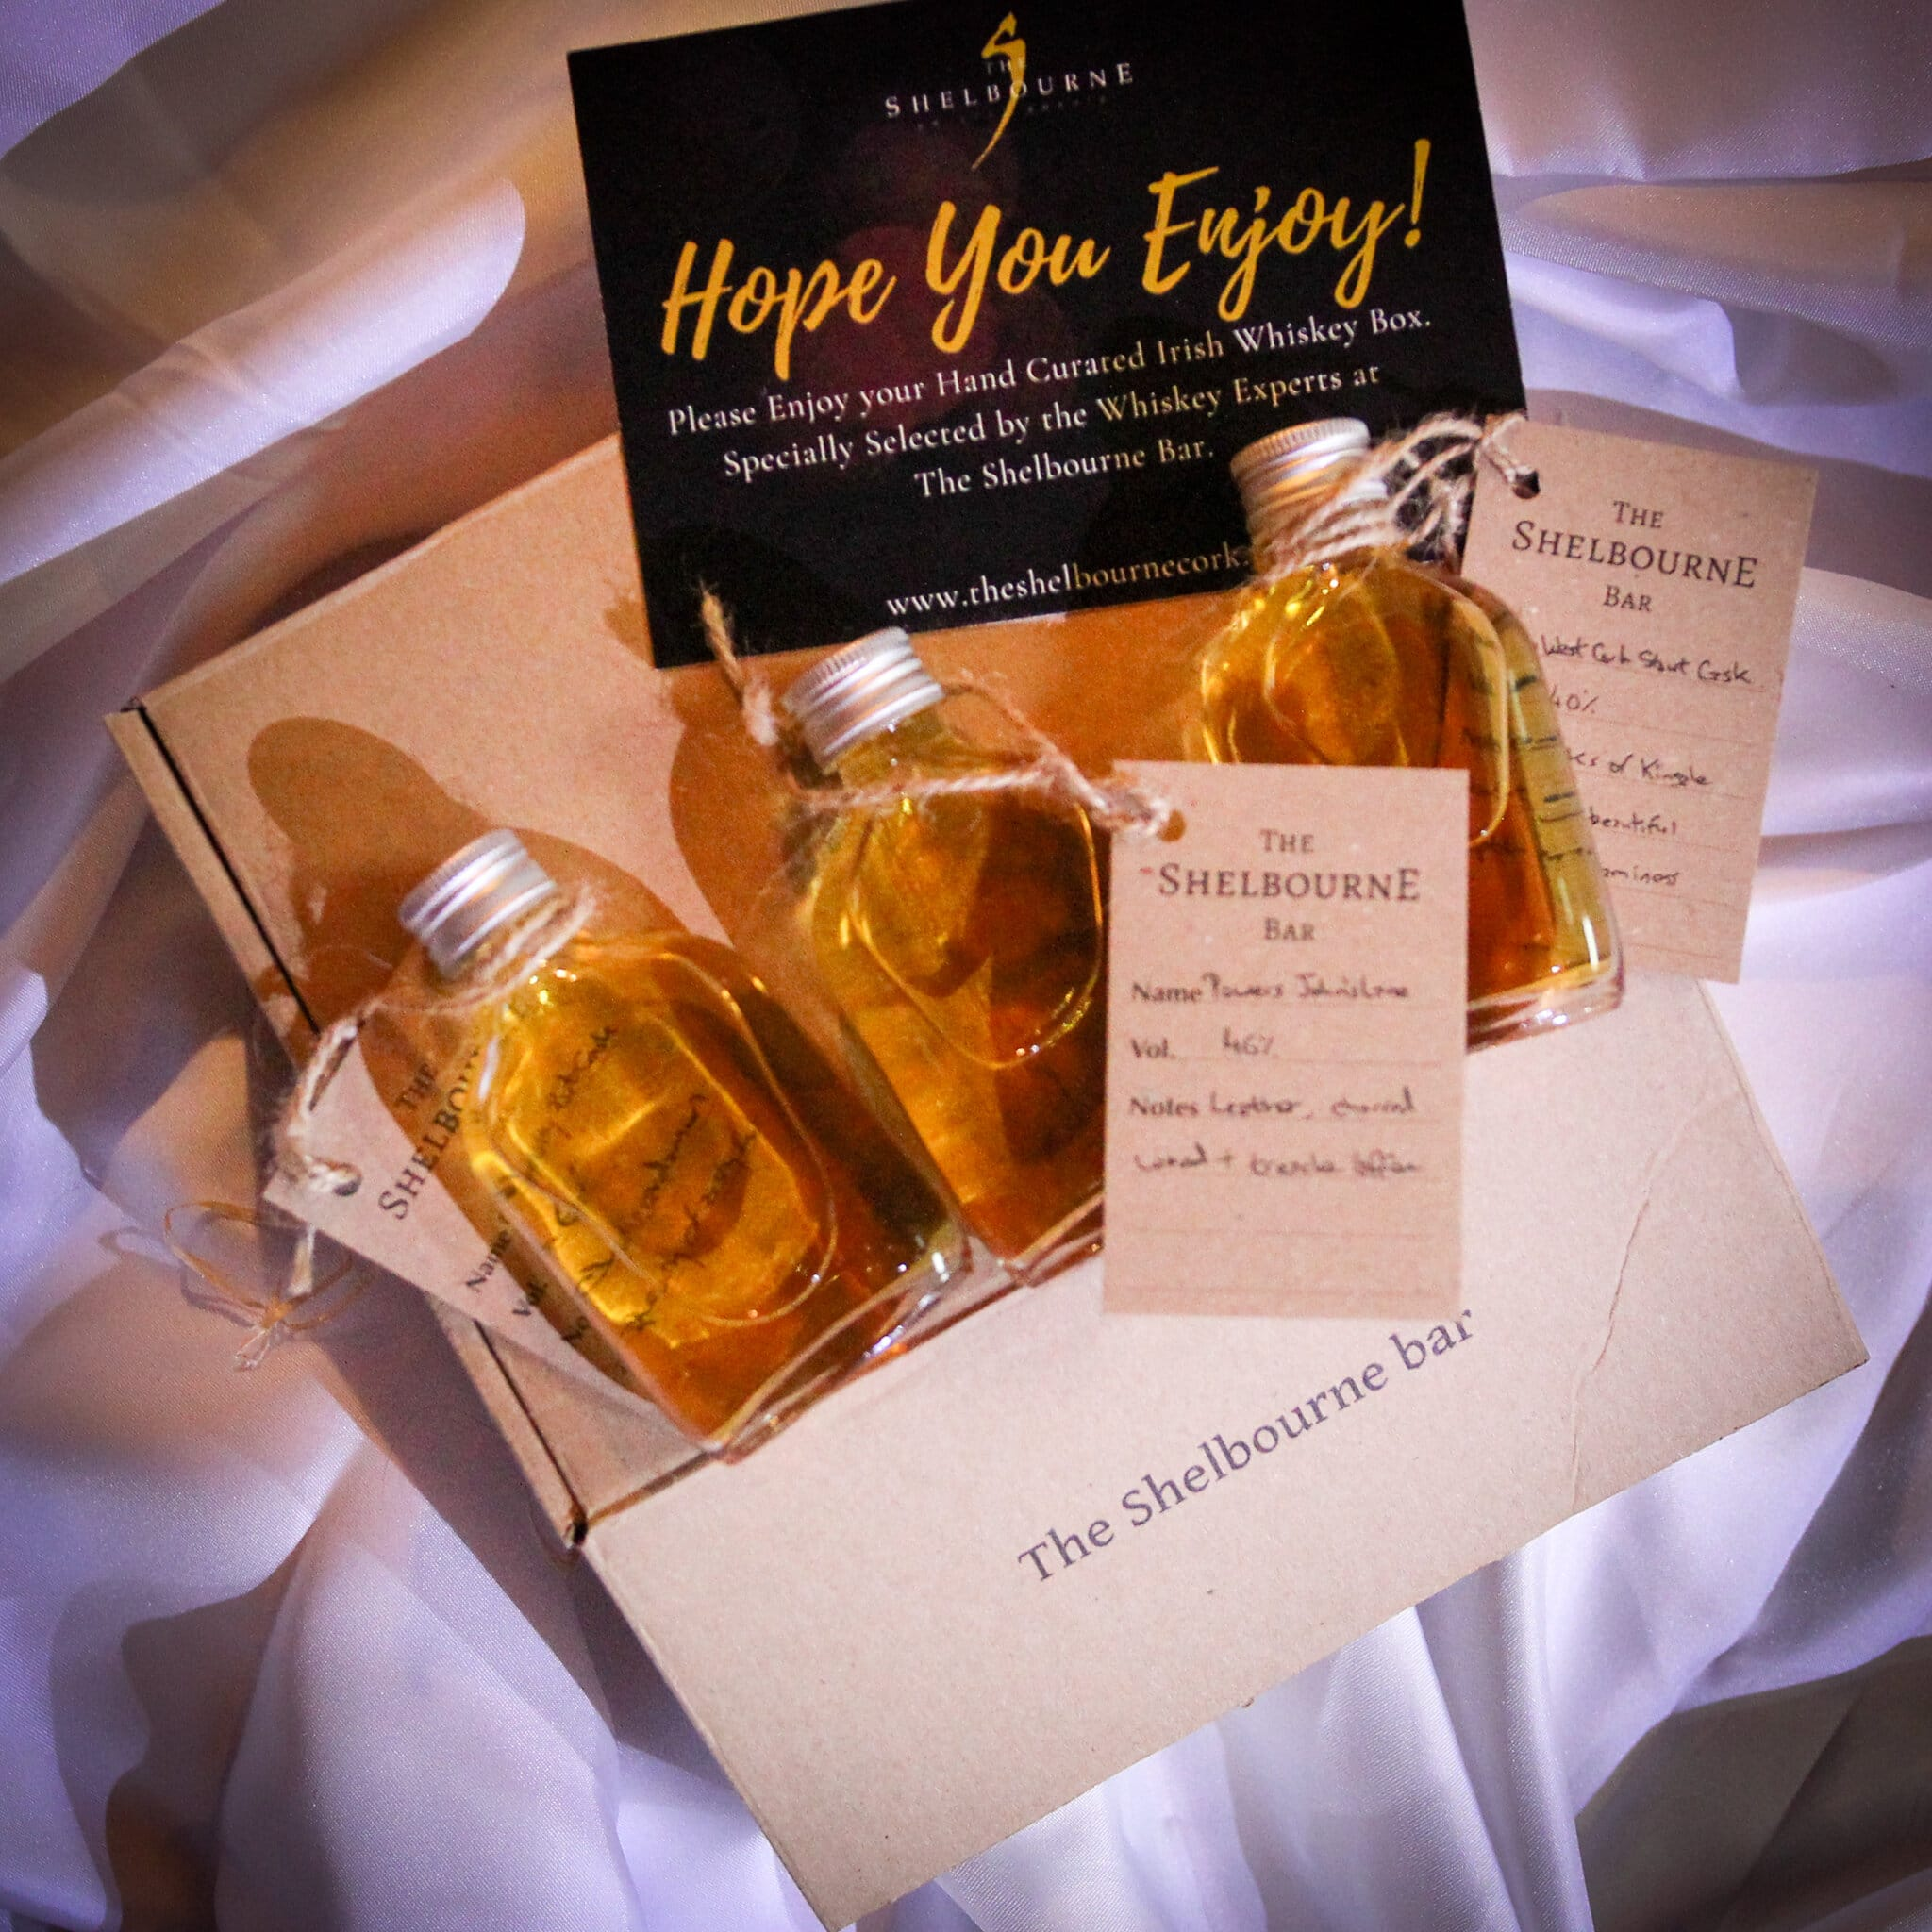 Order Whiskey Gift Boxes from the Shelbourne